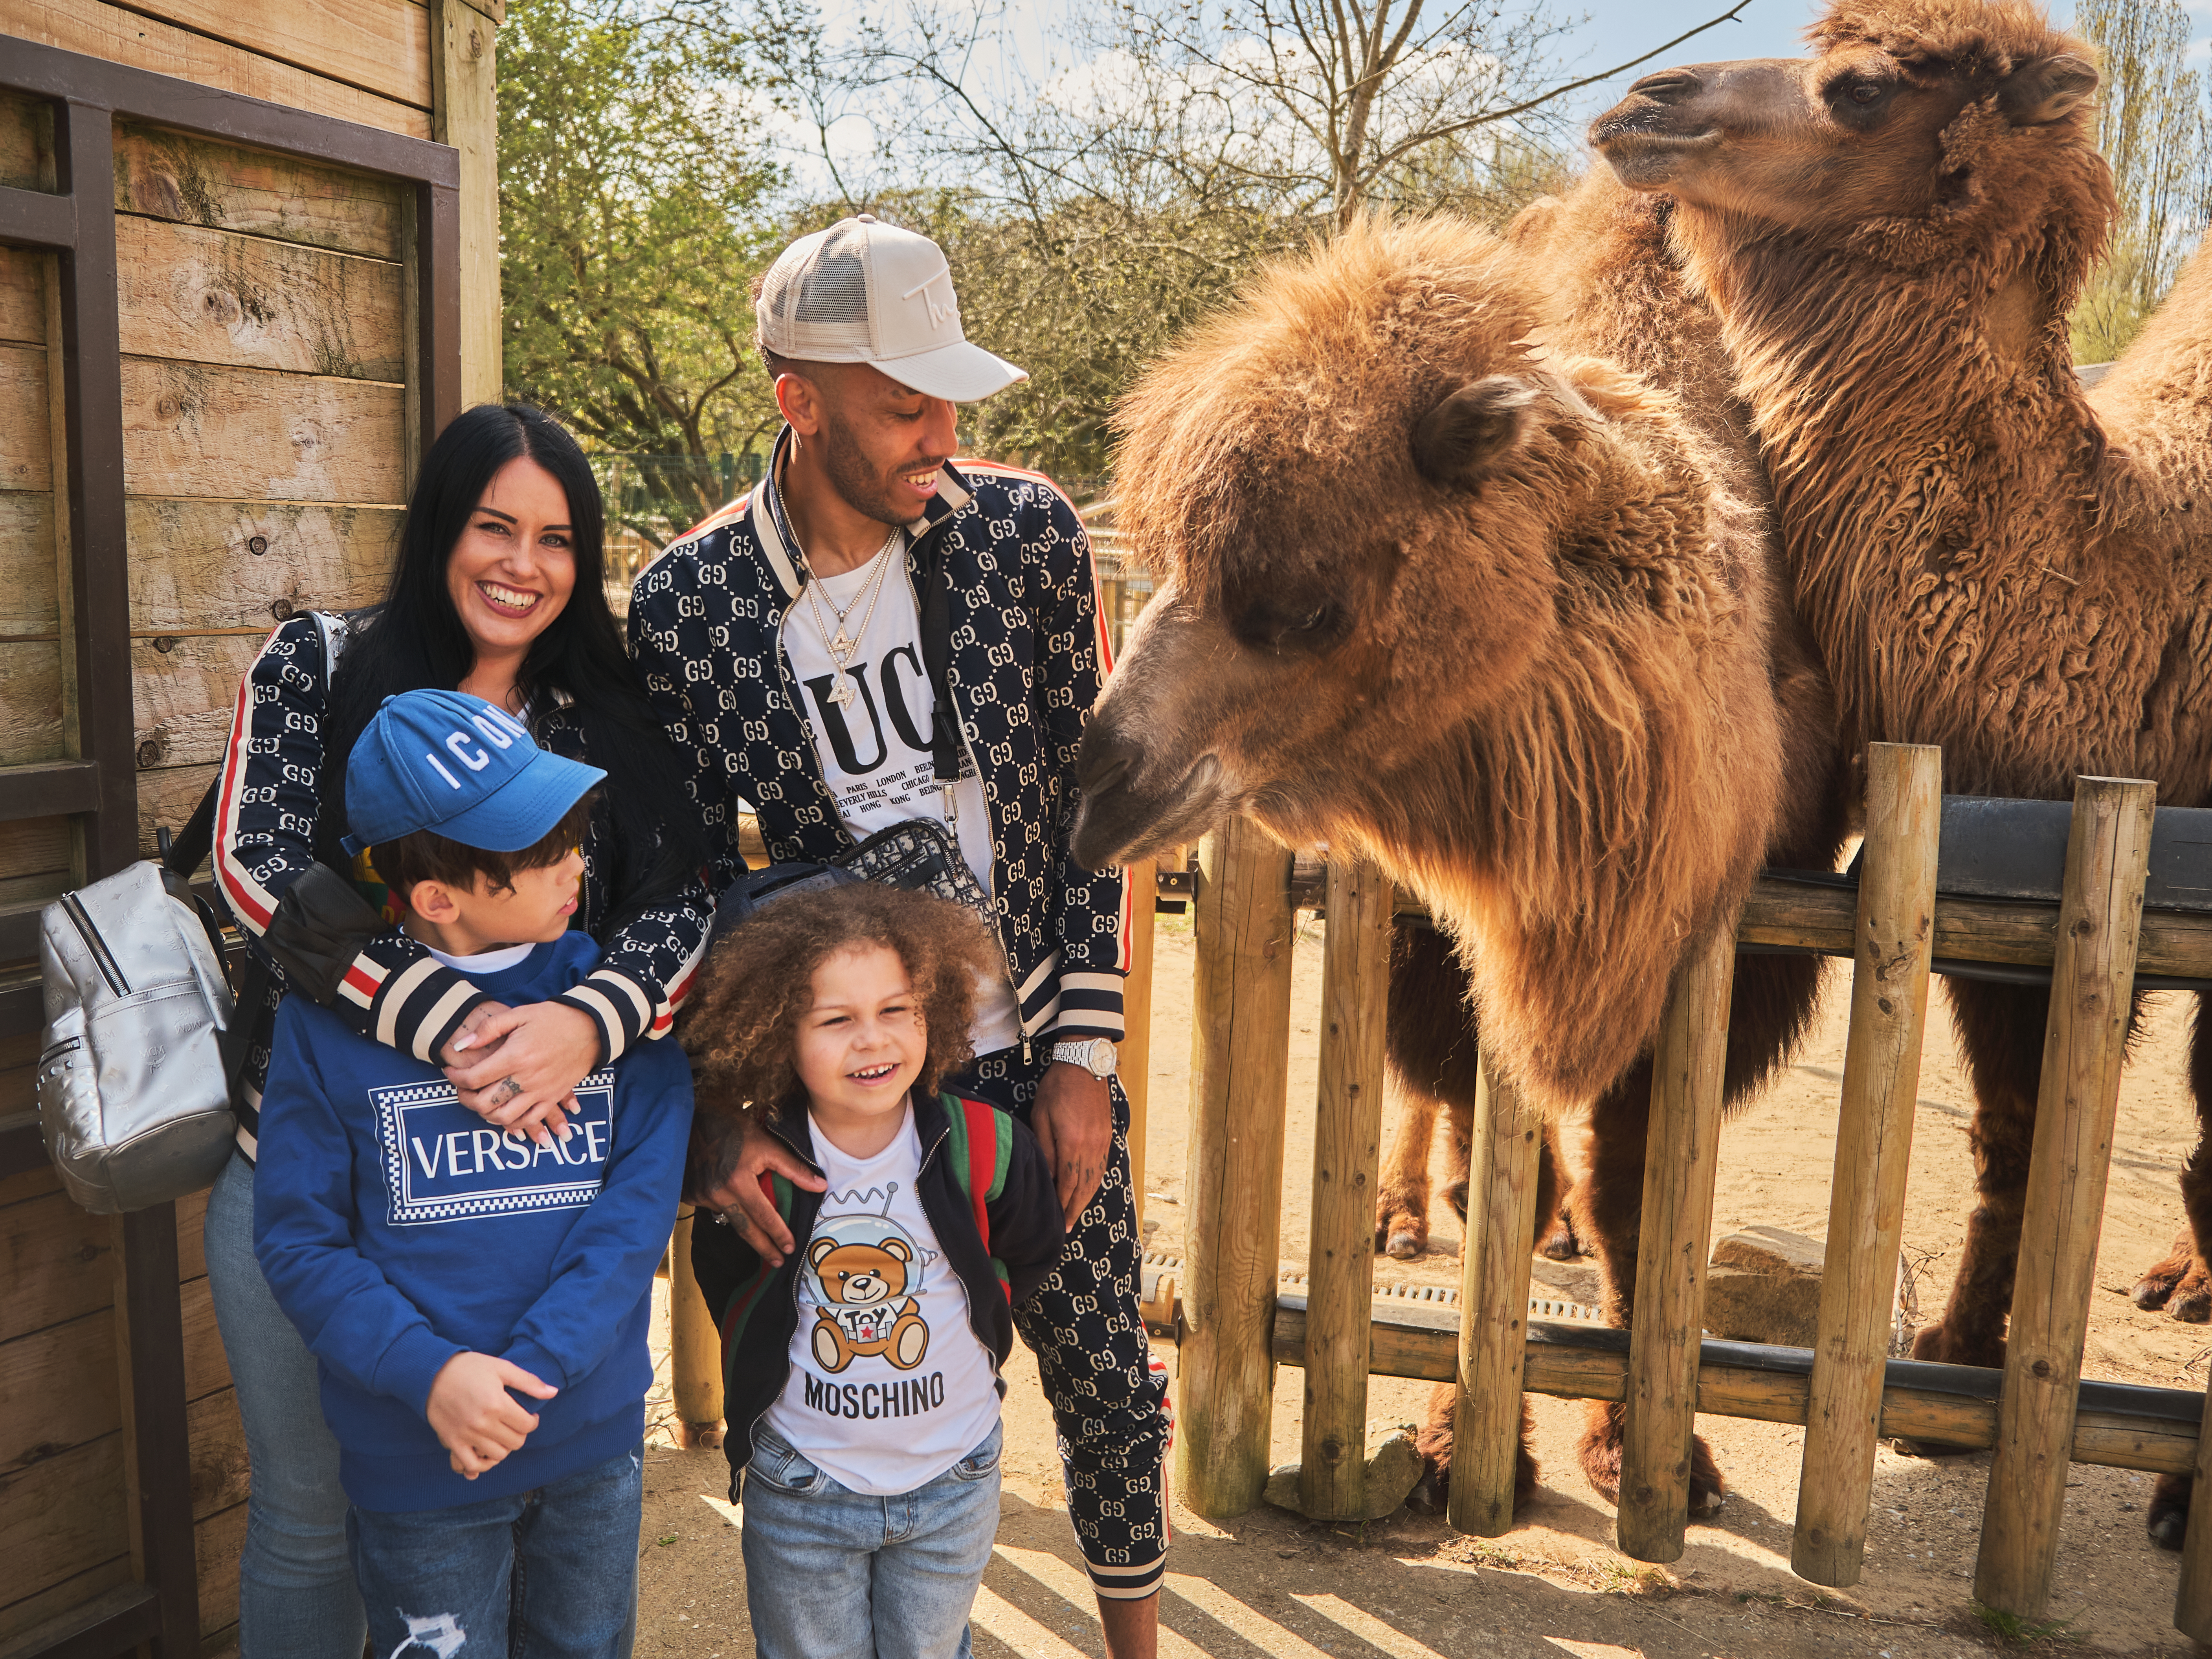 Pierre-Emerick Aubameyang and his family with a camel